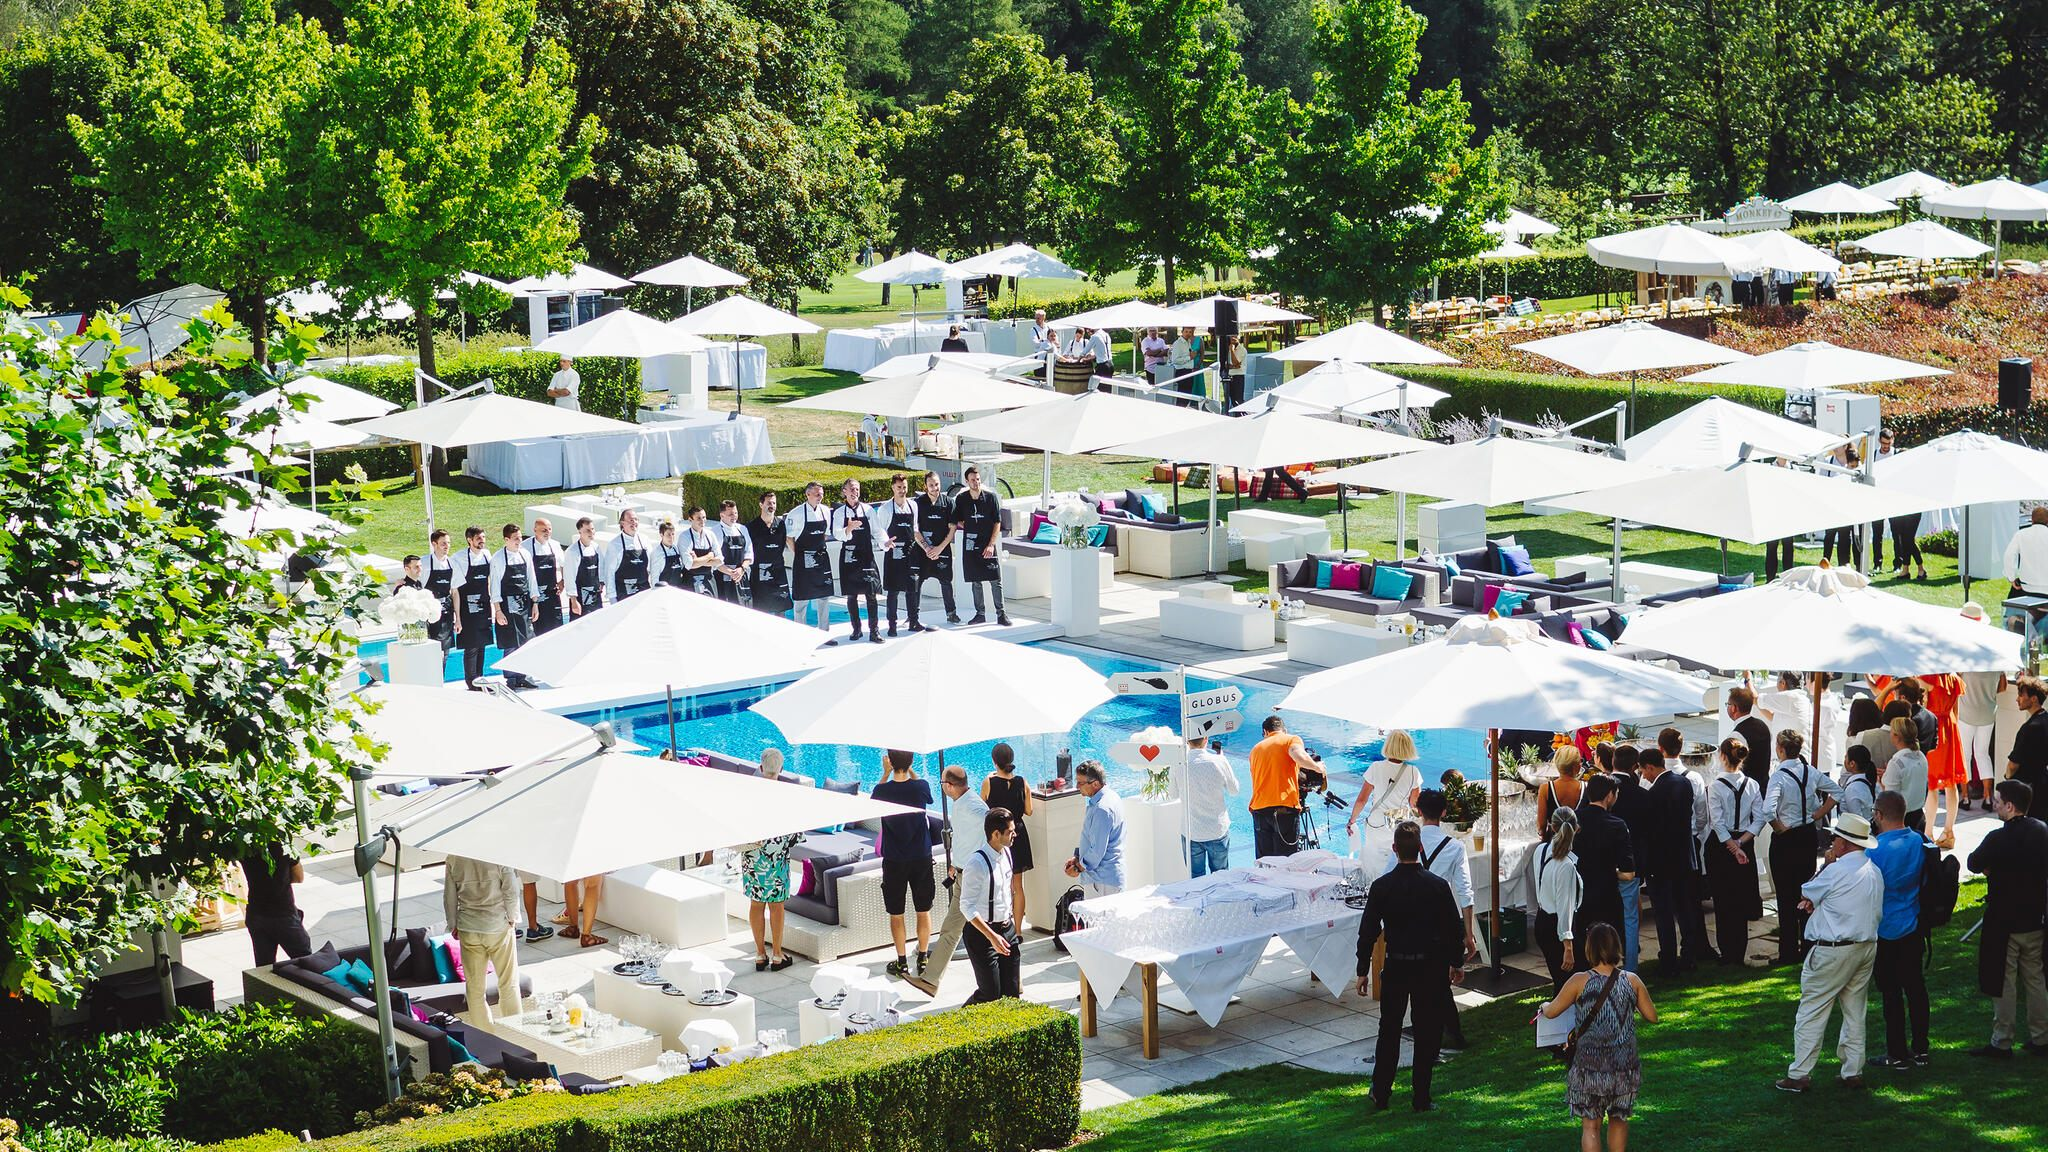 Gault&Millau Garden Party - 19. August 2018 - Bad Ragaz - Copyright Olivia Pulver